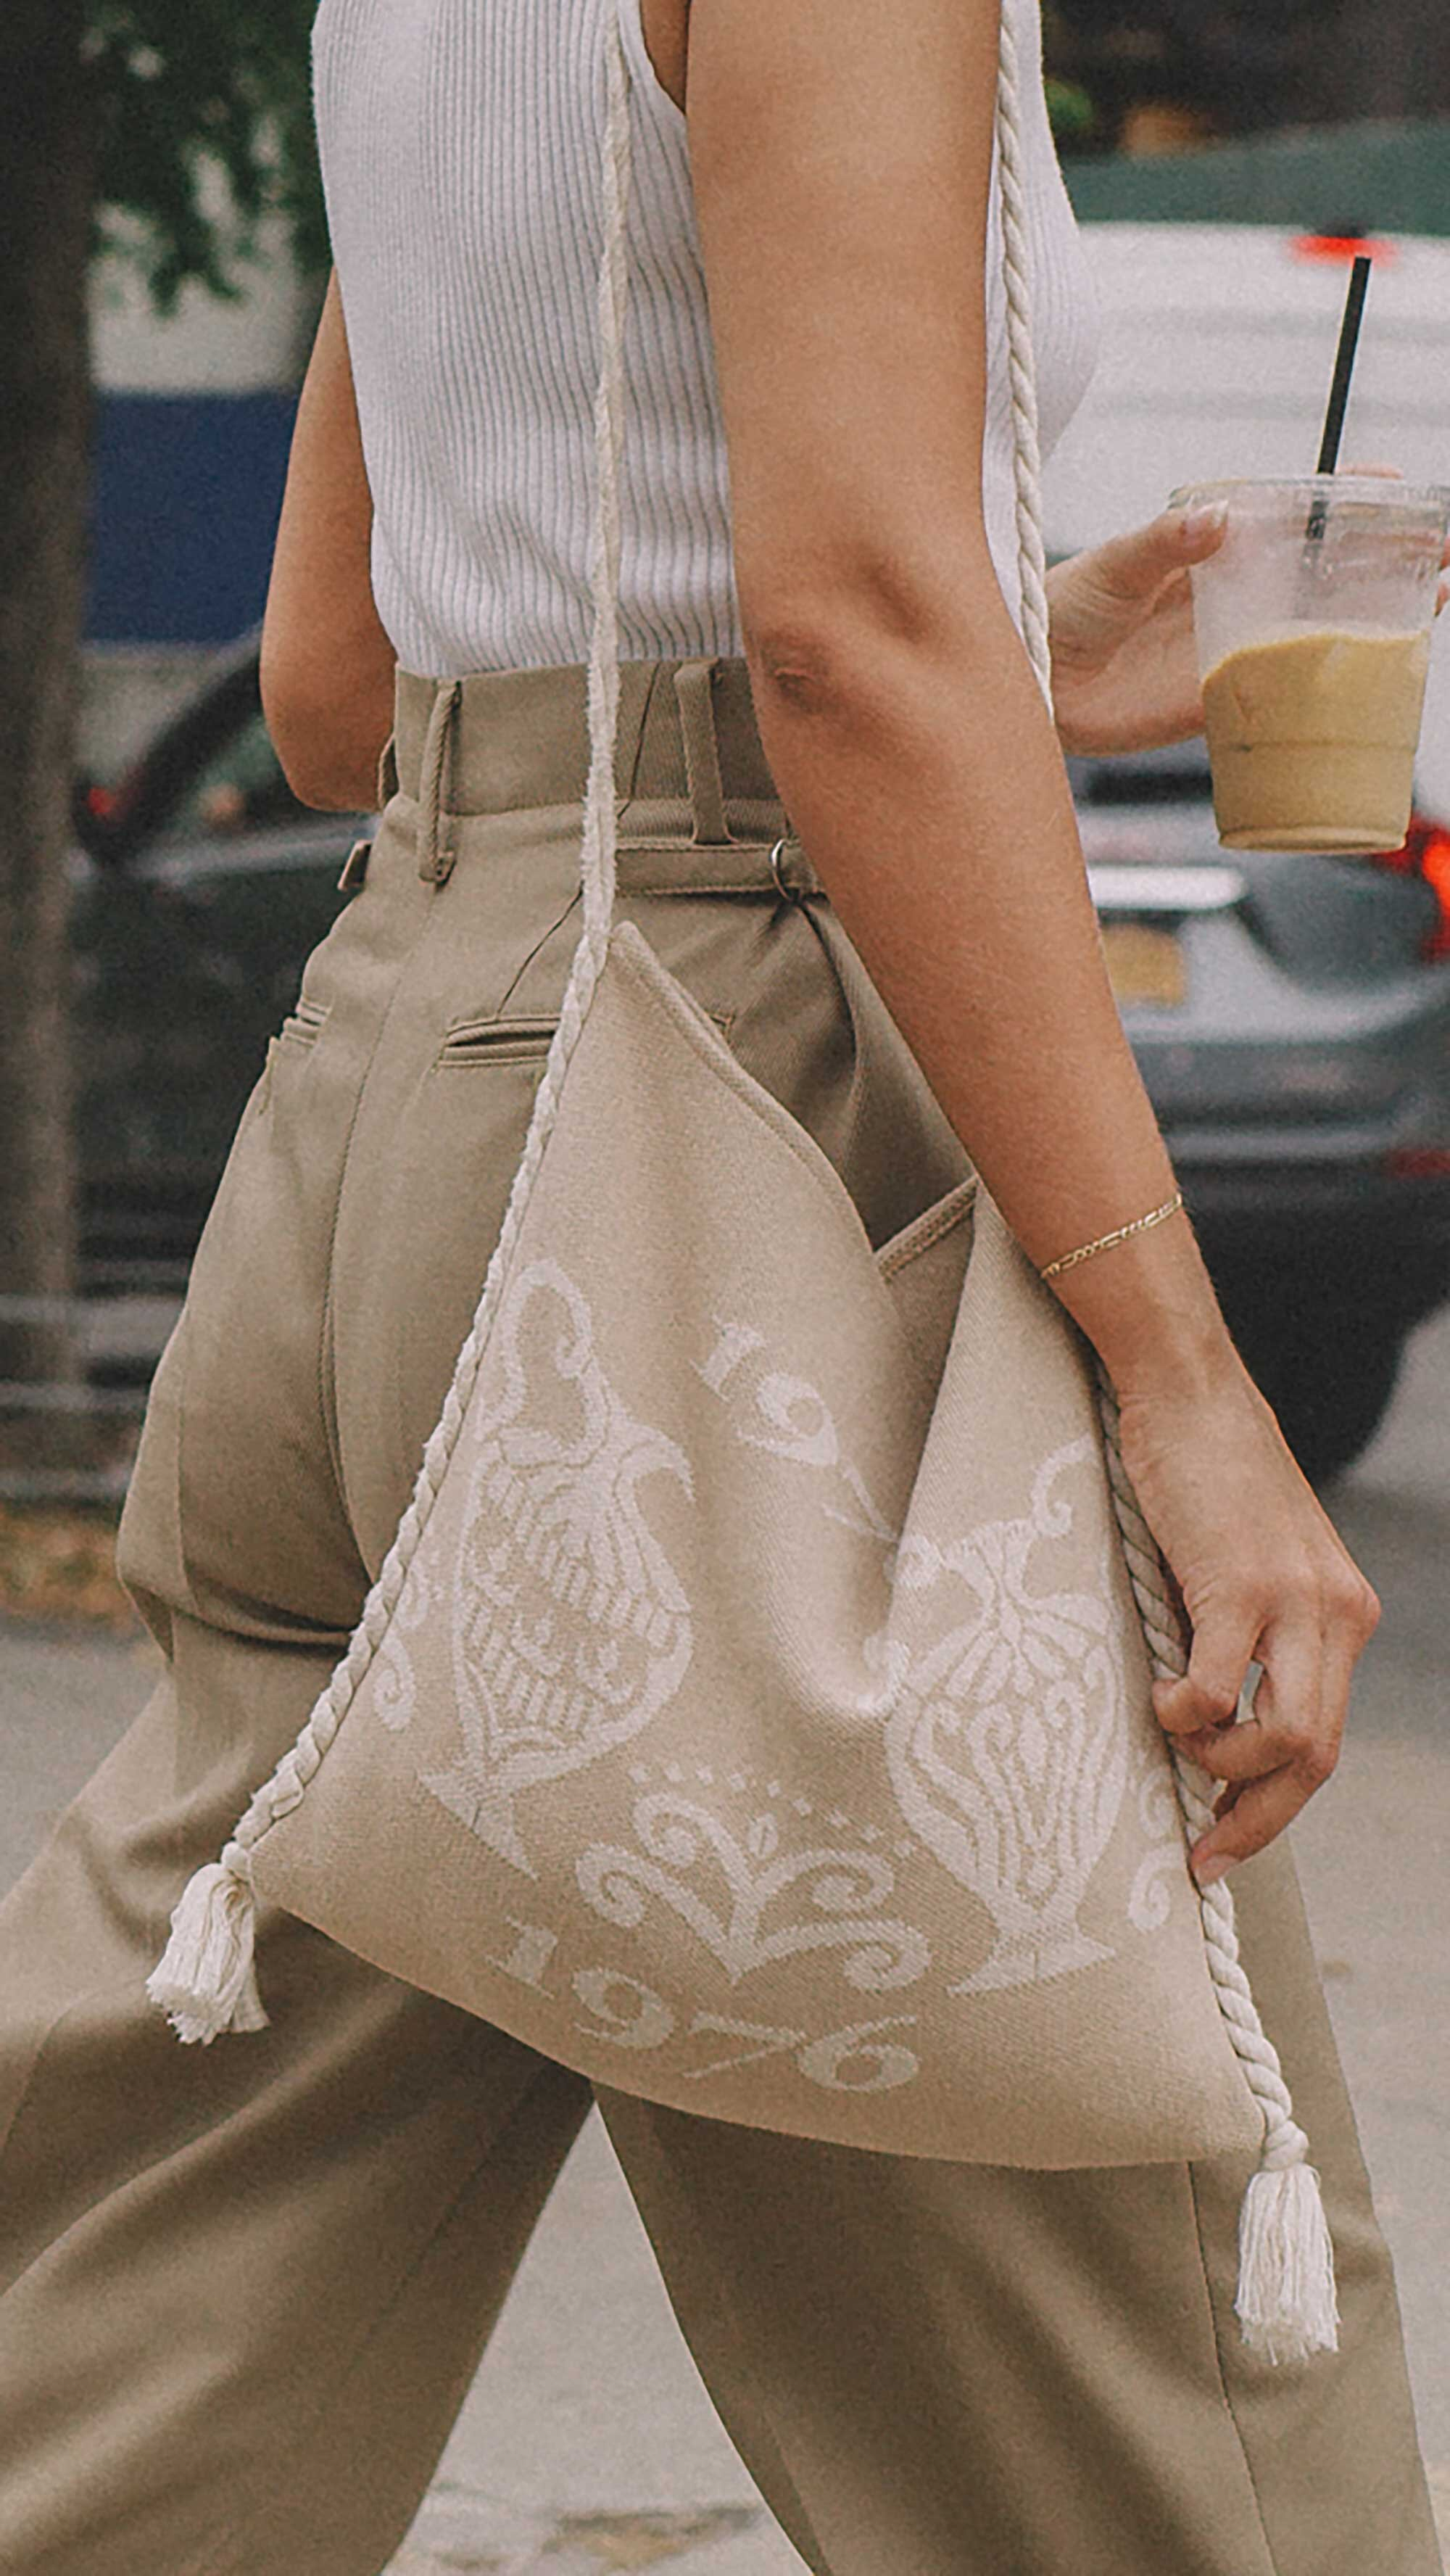 Best outfits of New York Fashion Week street style -7.jpg